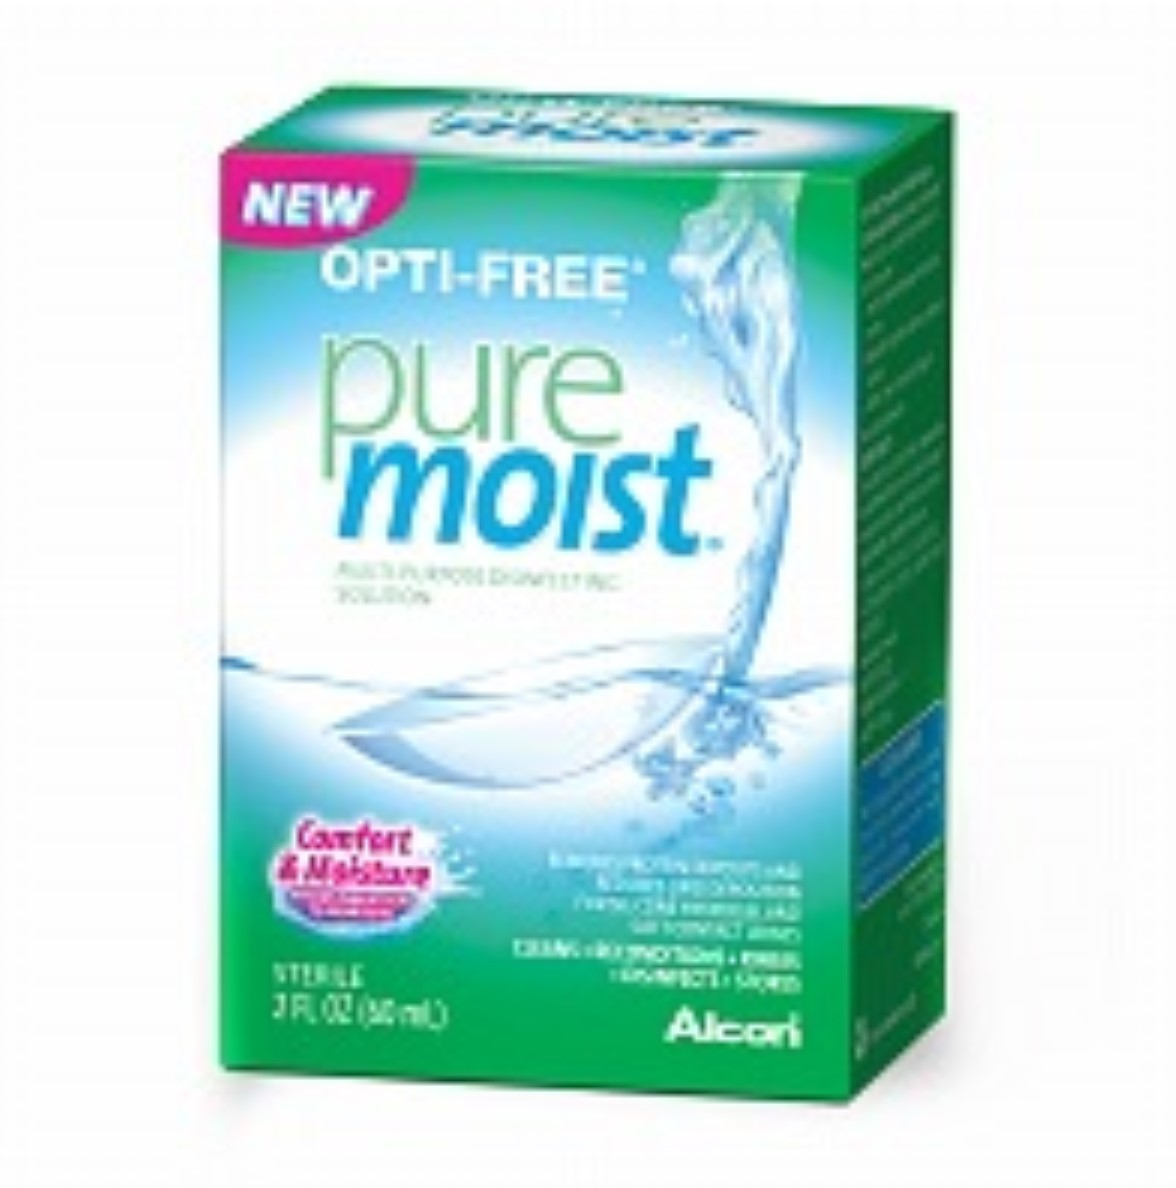 OPTI-FREE Pure Moist Multi-Purpose Disinfecting Solution 2 oz (Pack of 6)